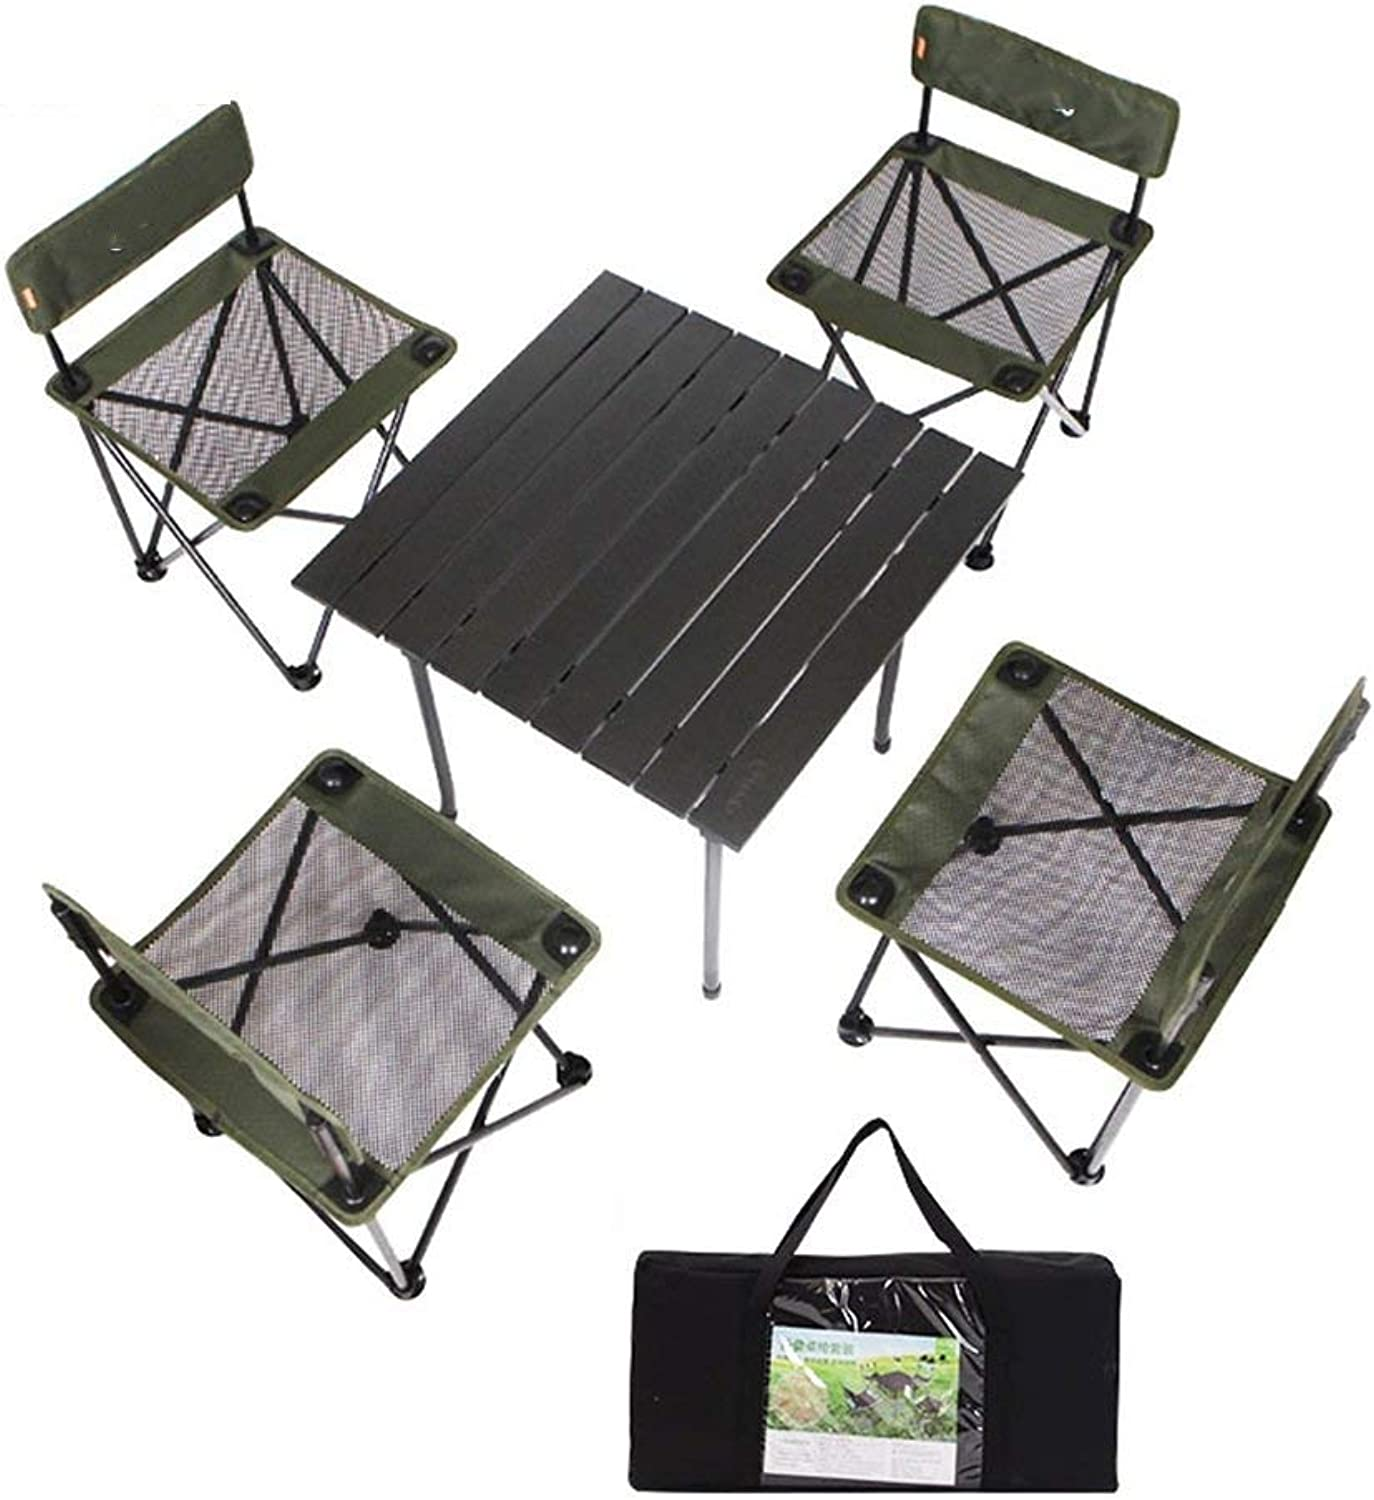 Outdoor Folding Wild SelfDriving Portable Picnic and Chair Set of 5 Multifunction